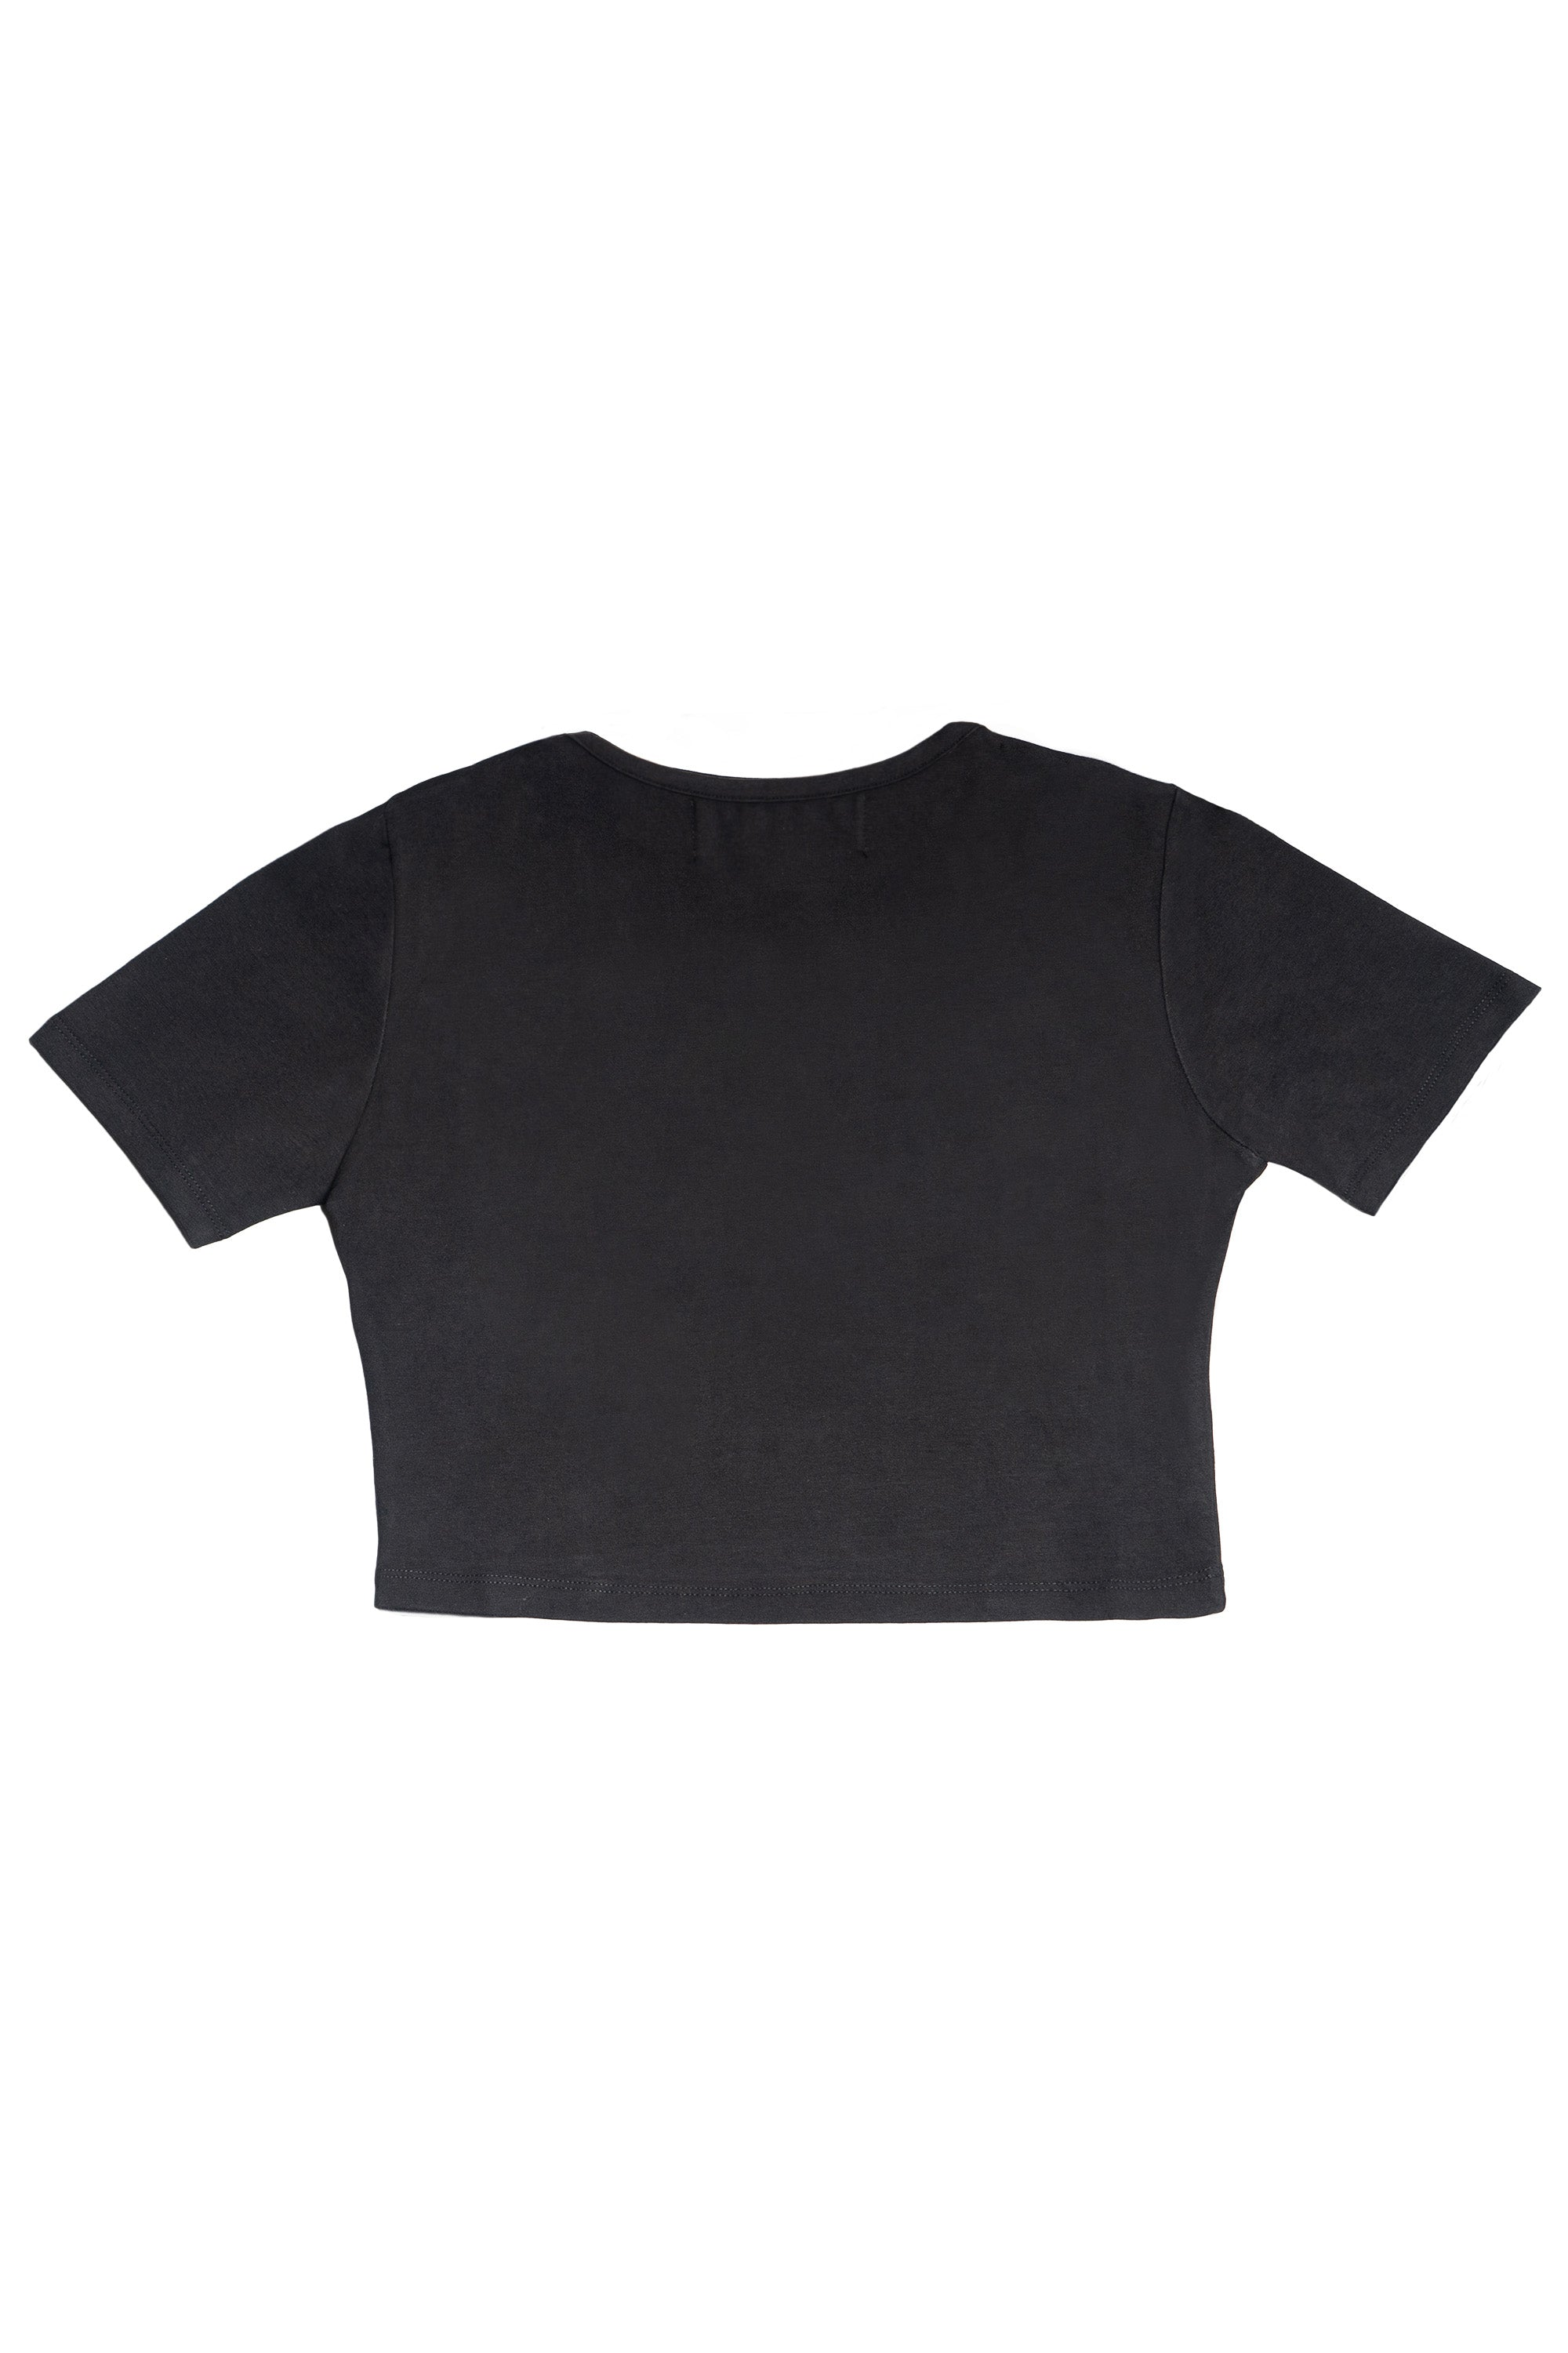 SS18 FEMALE CROP TOP (SS18 クロップトップ)